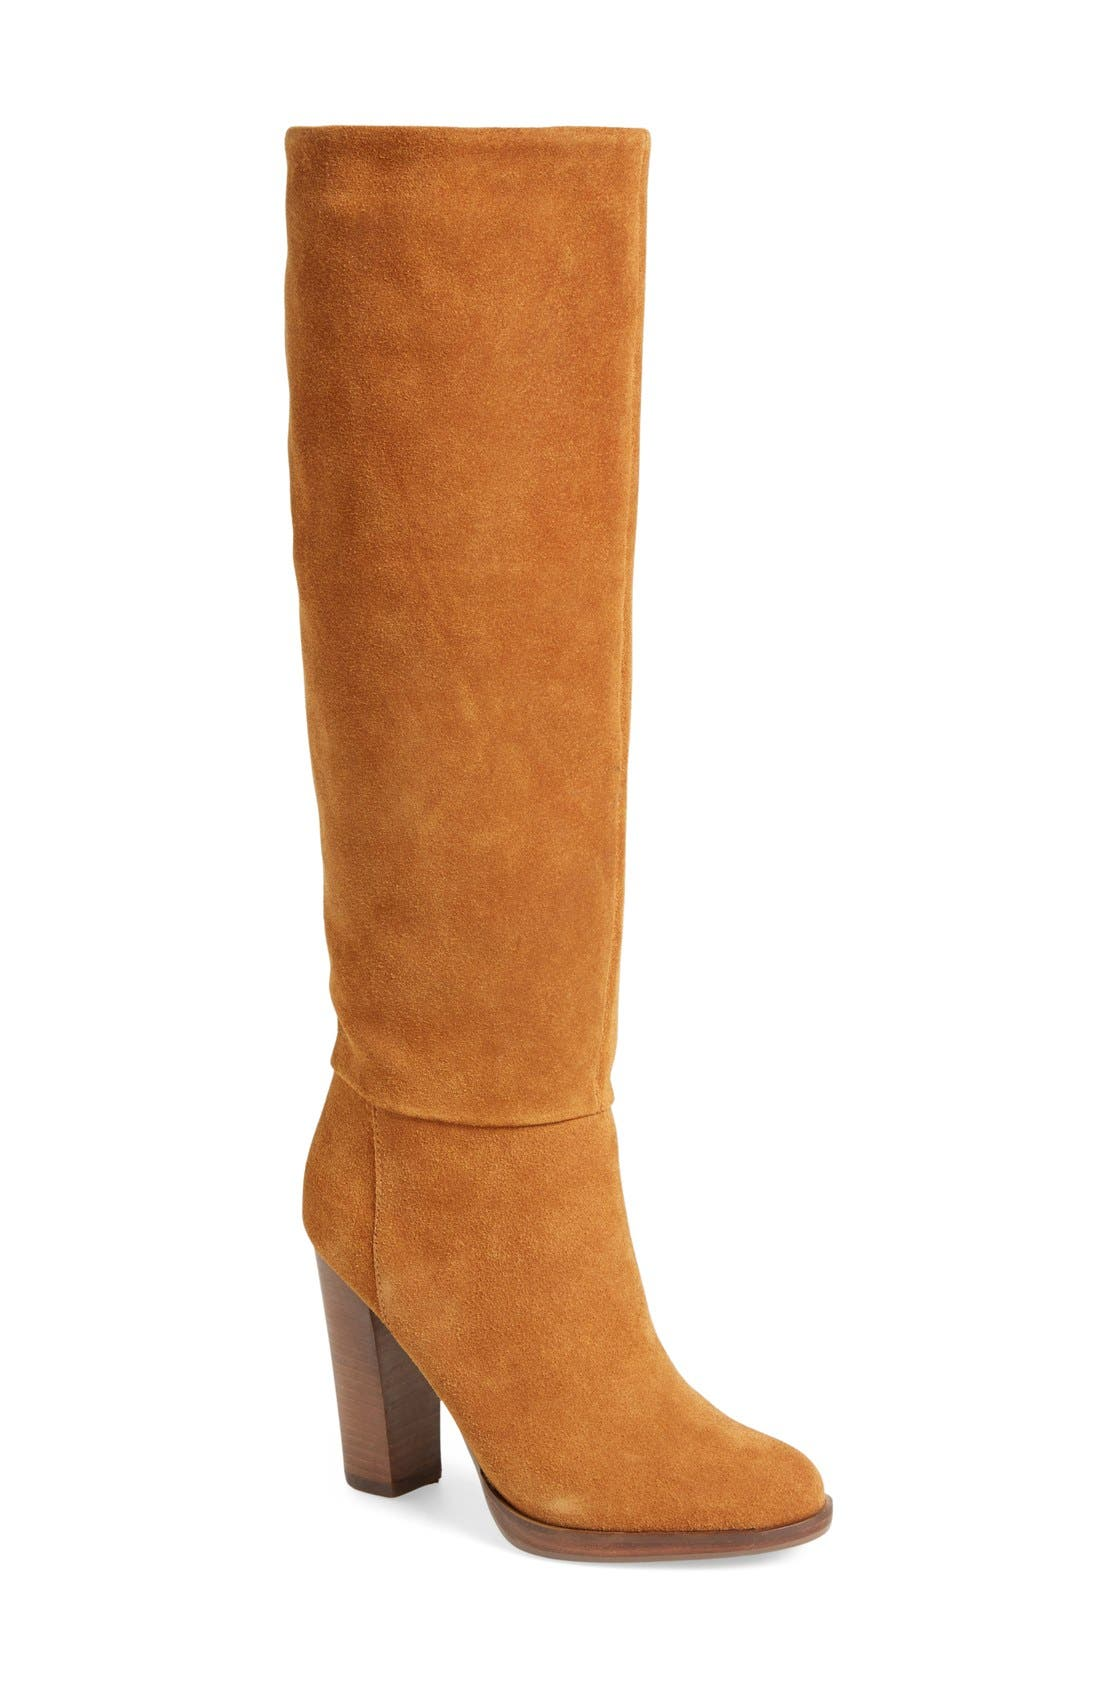 Alternate Image 1 Selected - REPORT Signature 'Lannister' Tall Boot (Women)